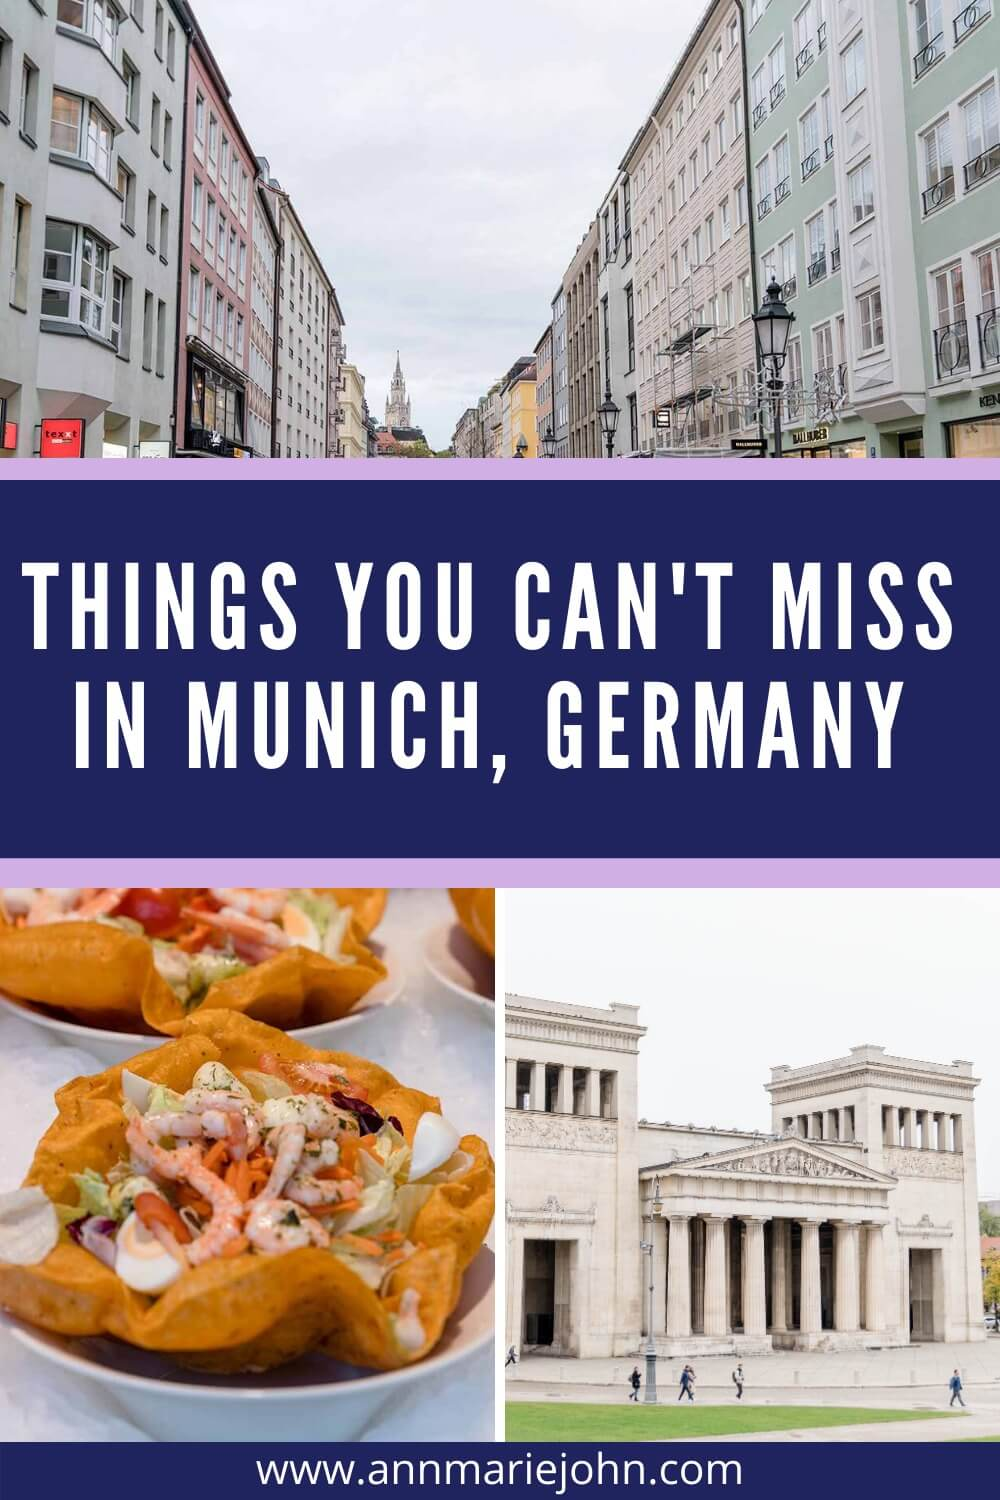 Things You Can't Miss in Munich